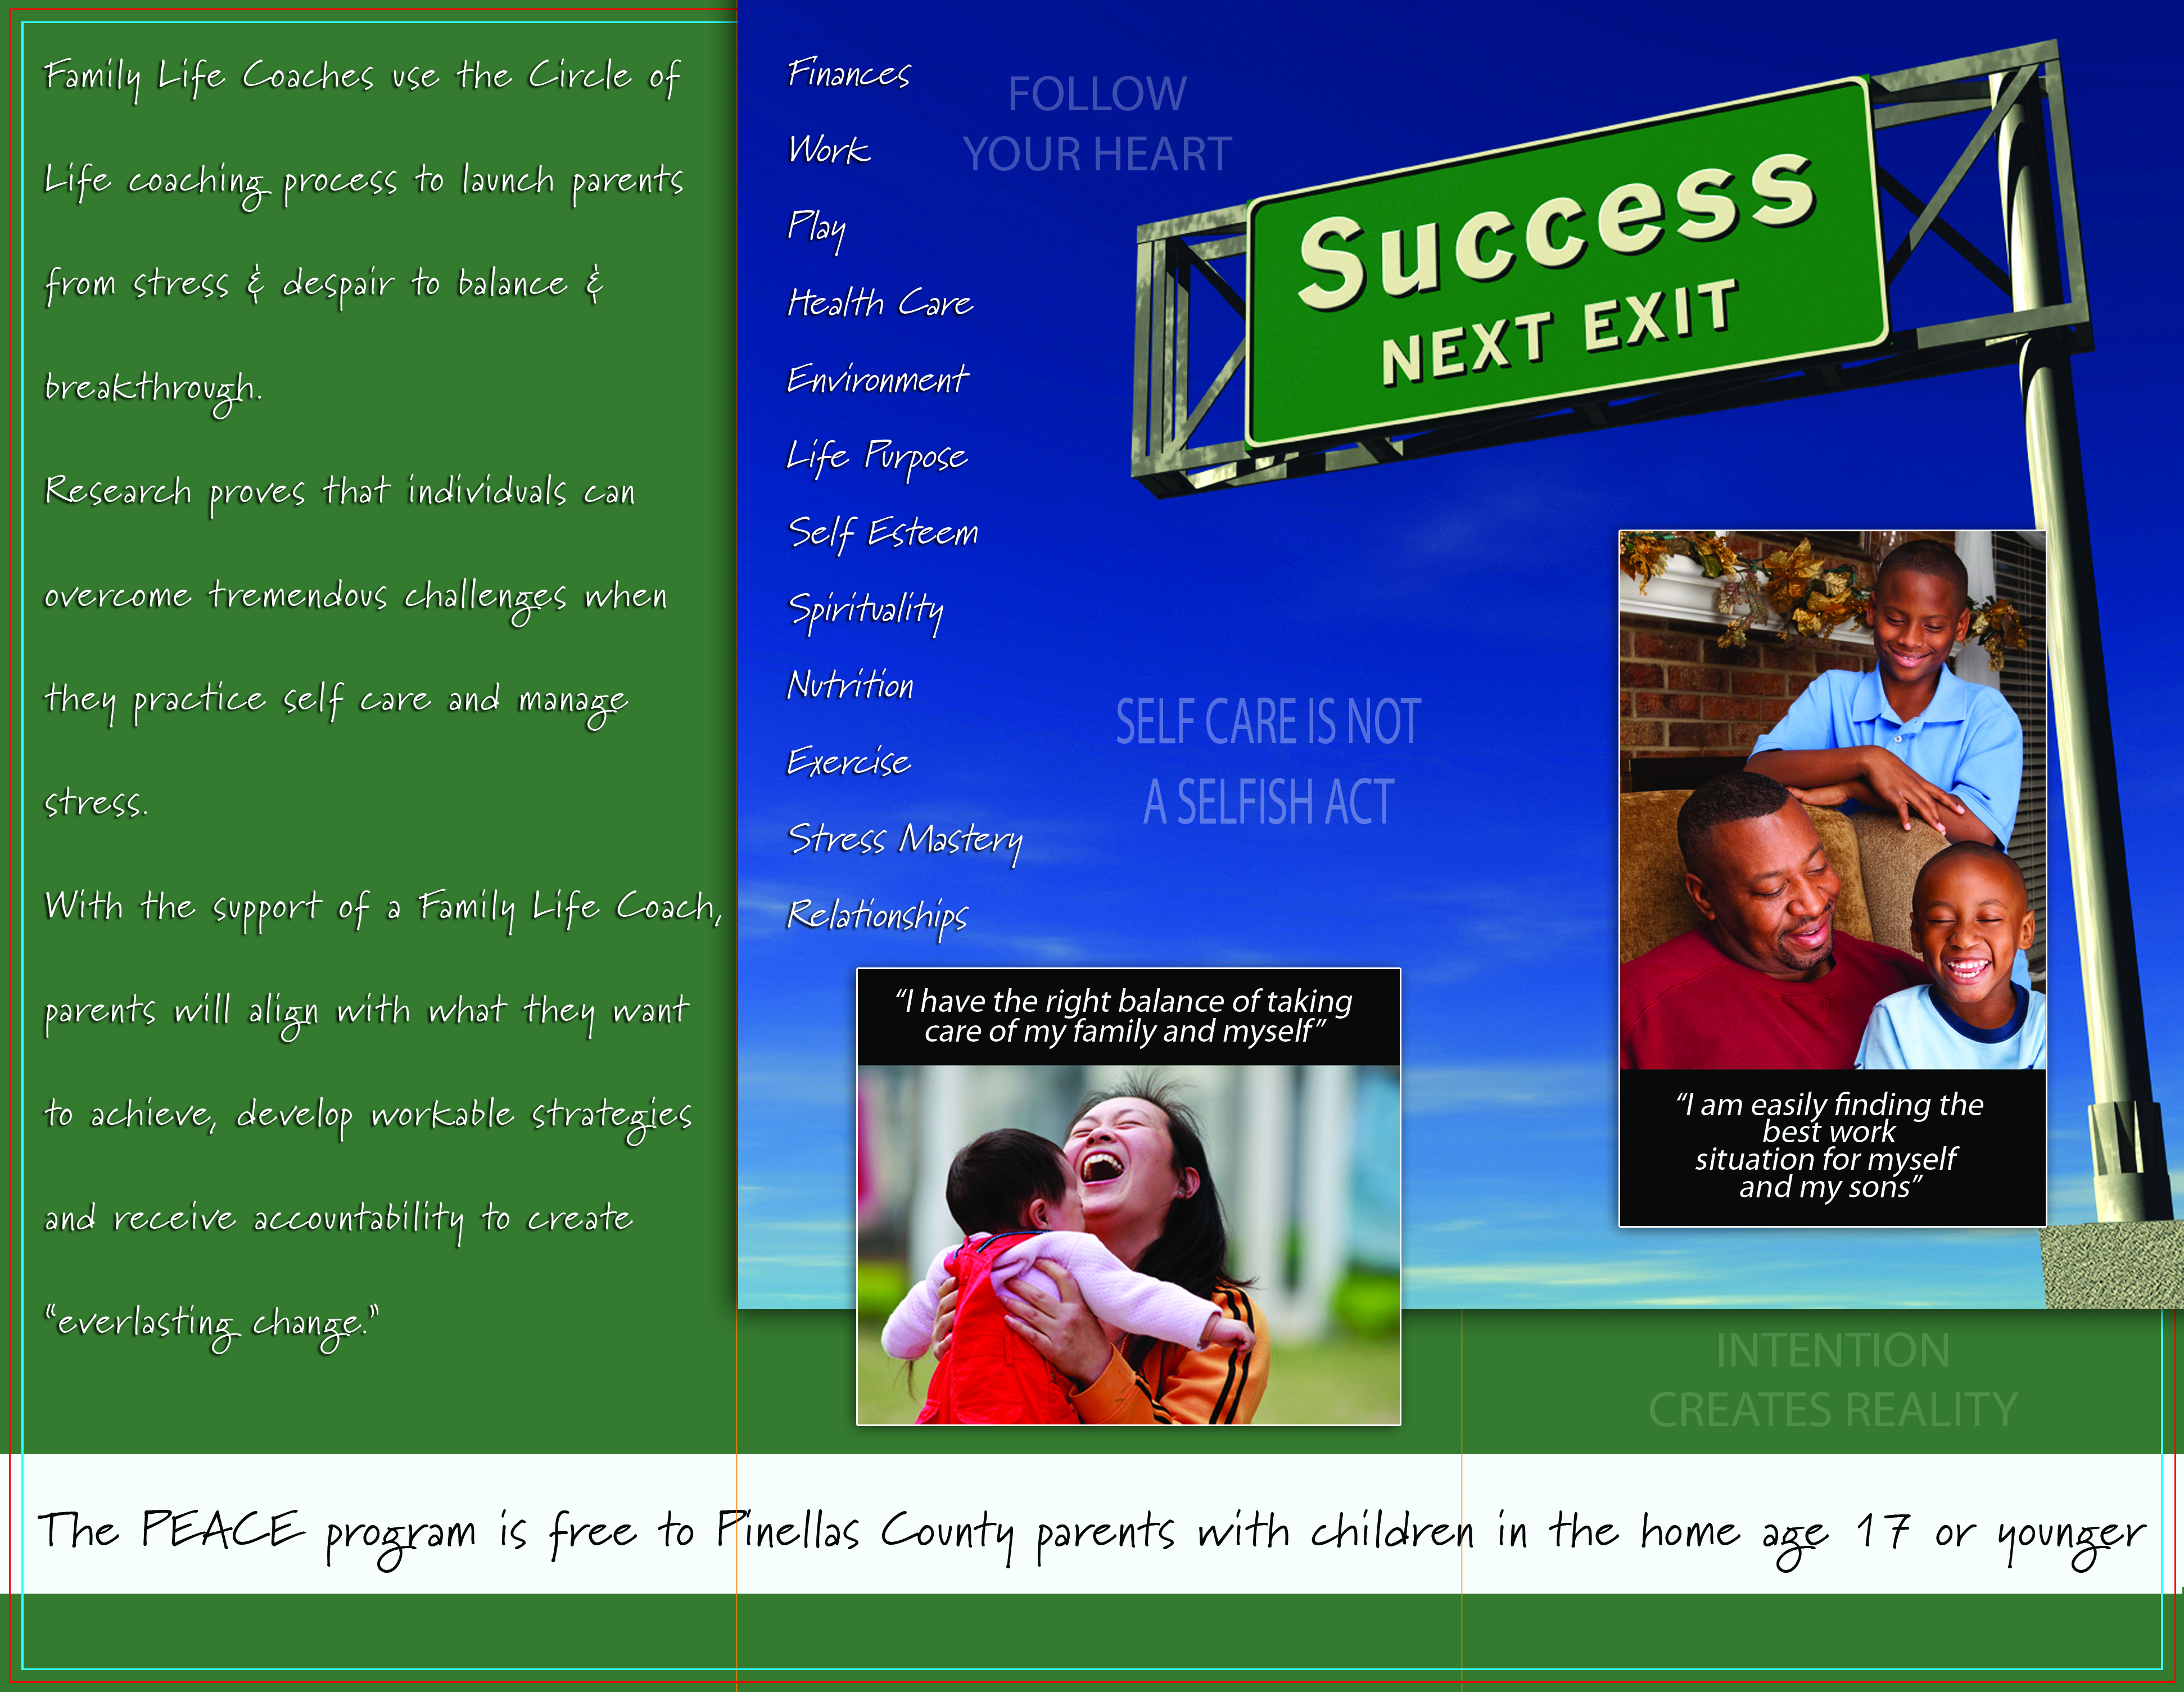 brochure inside outside jpeg format